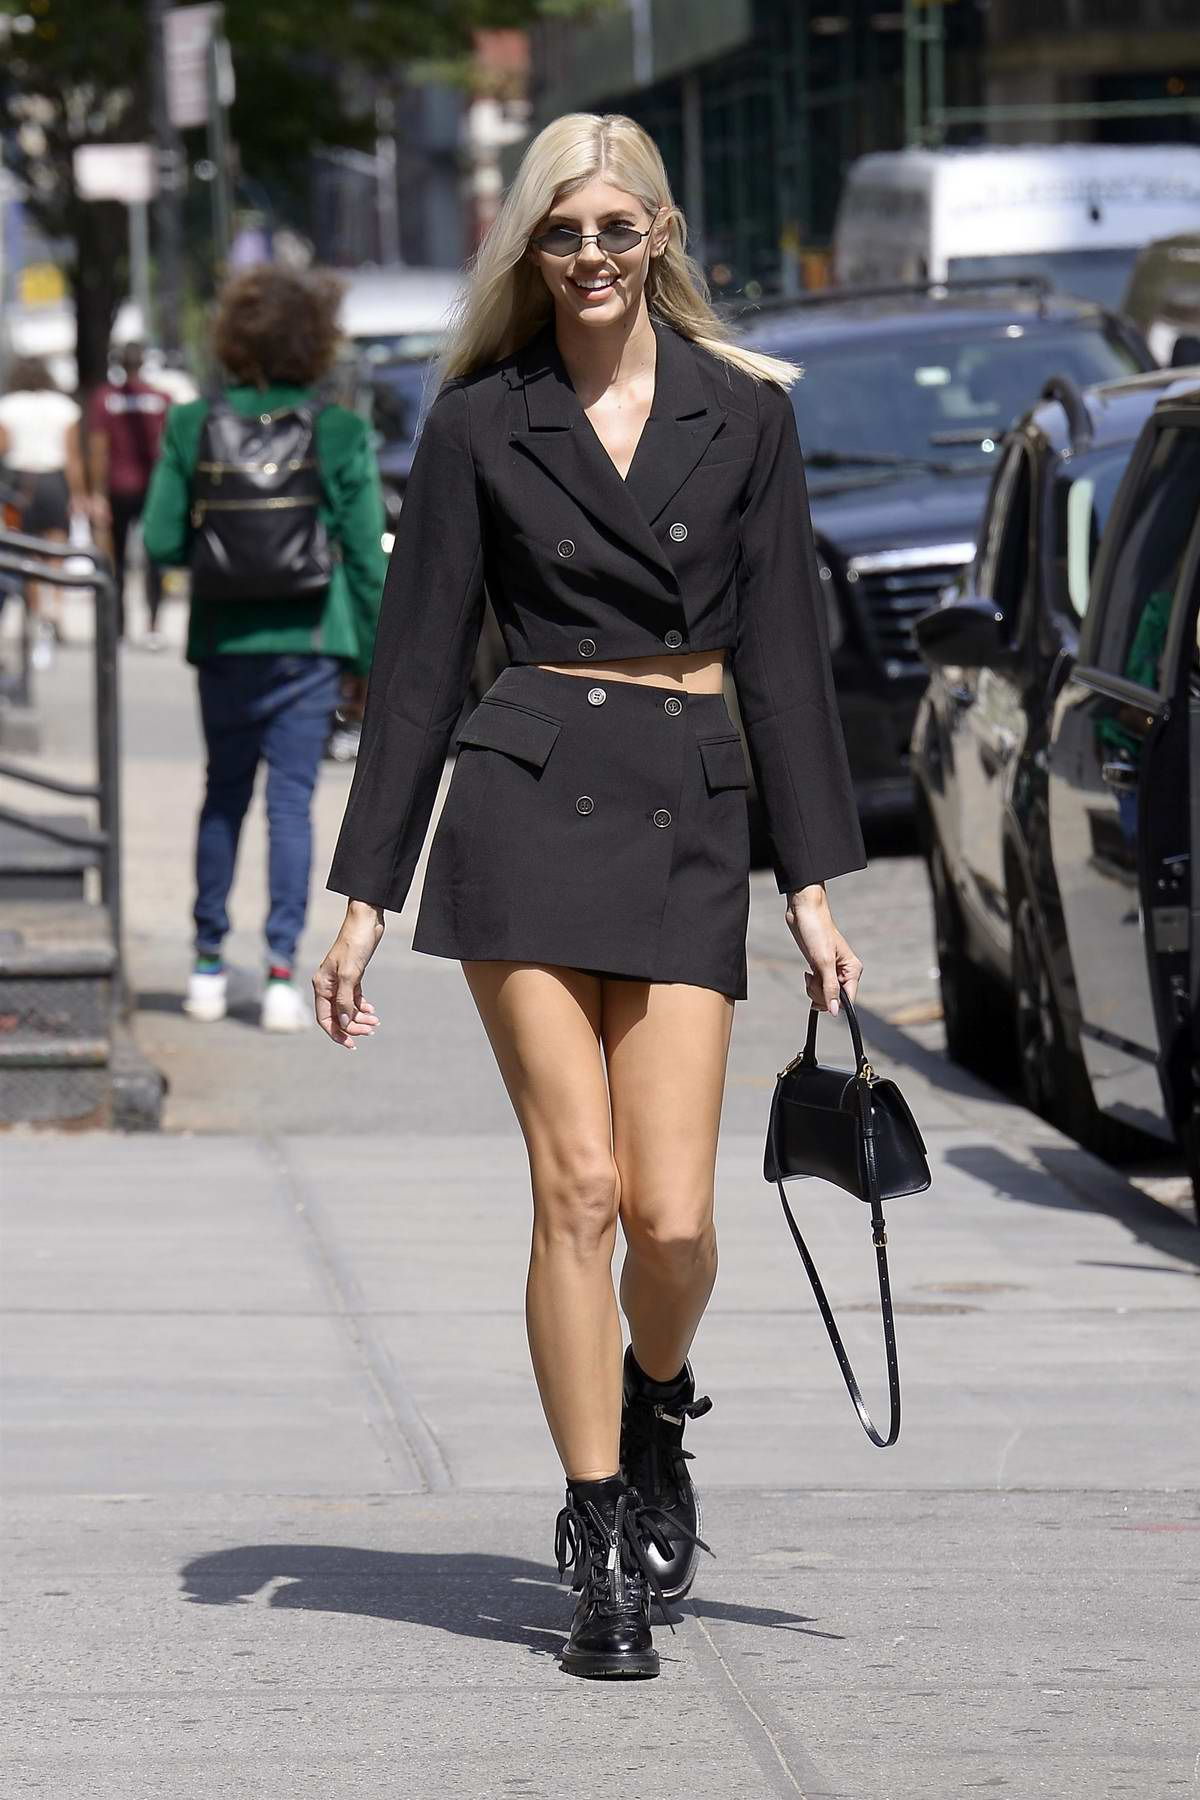 Devon Windsor looks stylish in a black double-breasted skirt suit while out in SoHo, New York City